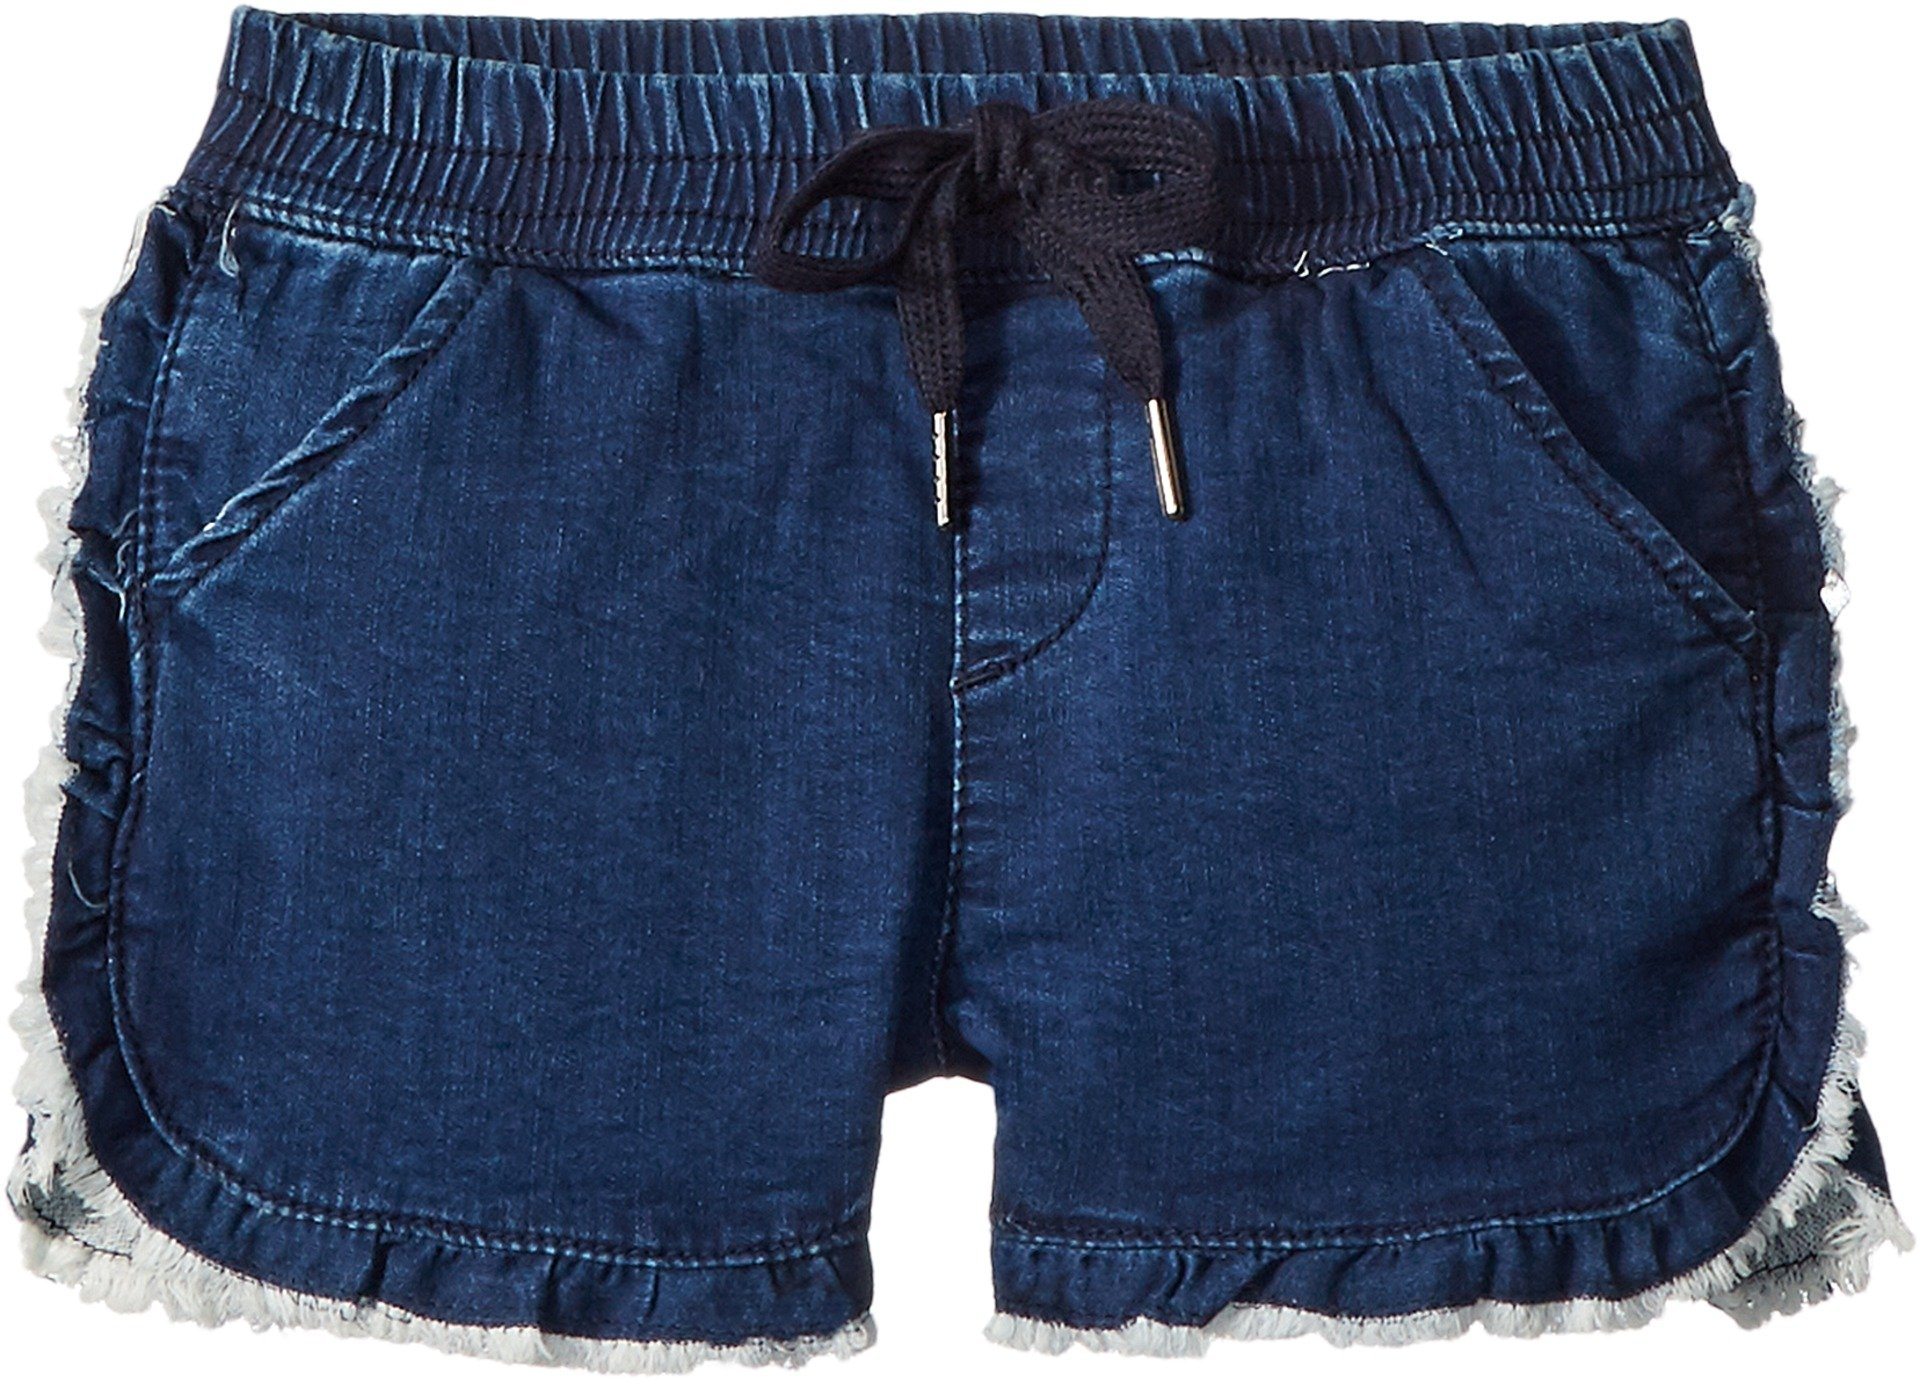 AG Adriano Goldschmied Kids Girl's The Lily Ruffle Pull-on Shorts (Big Kids) Navy/Hickory Large